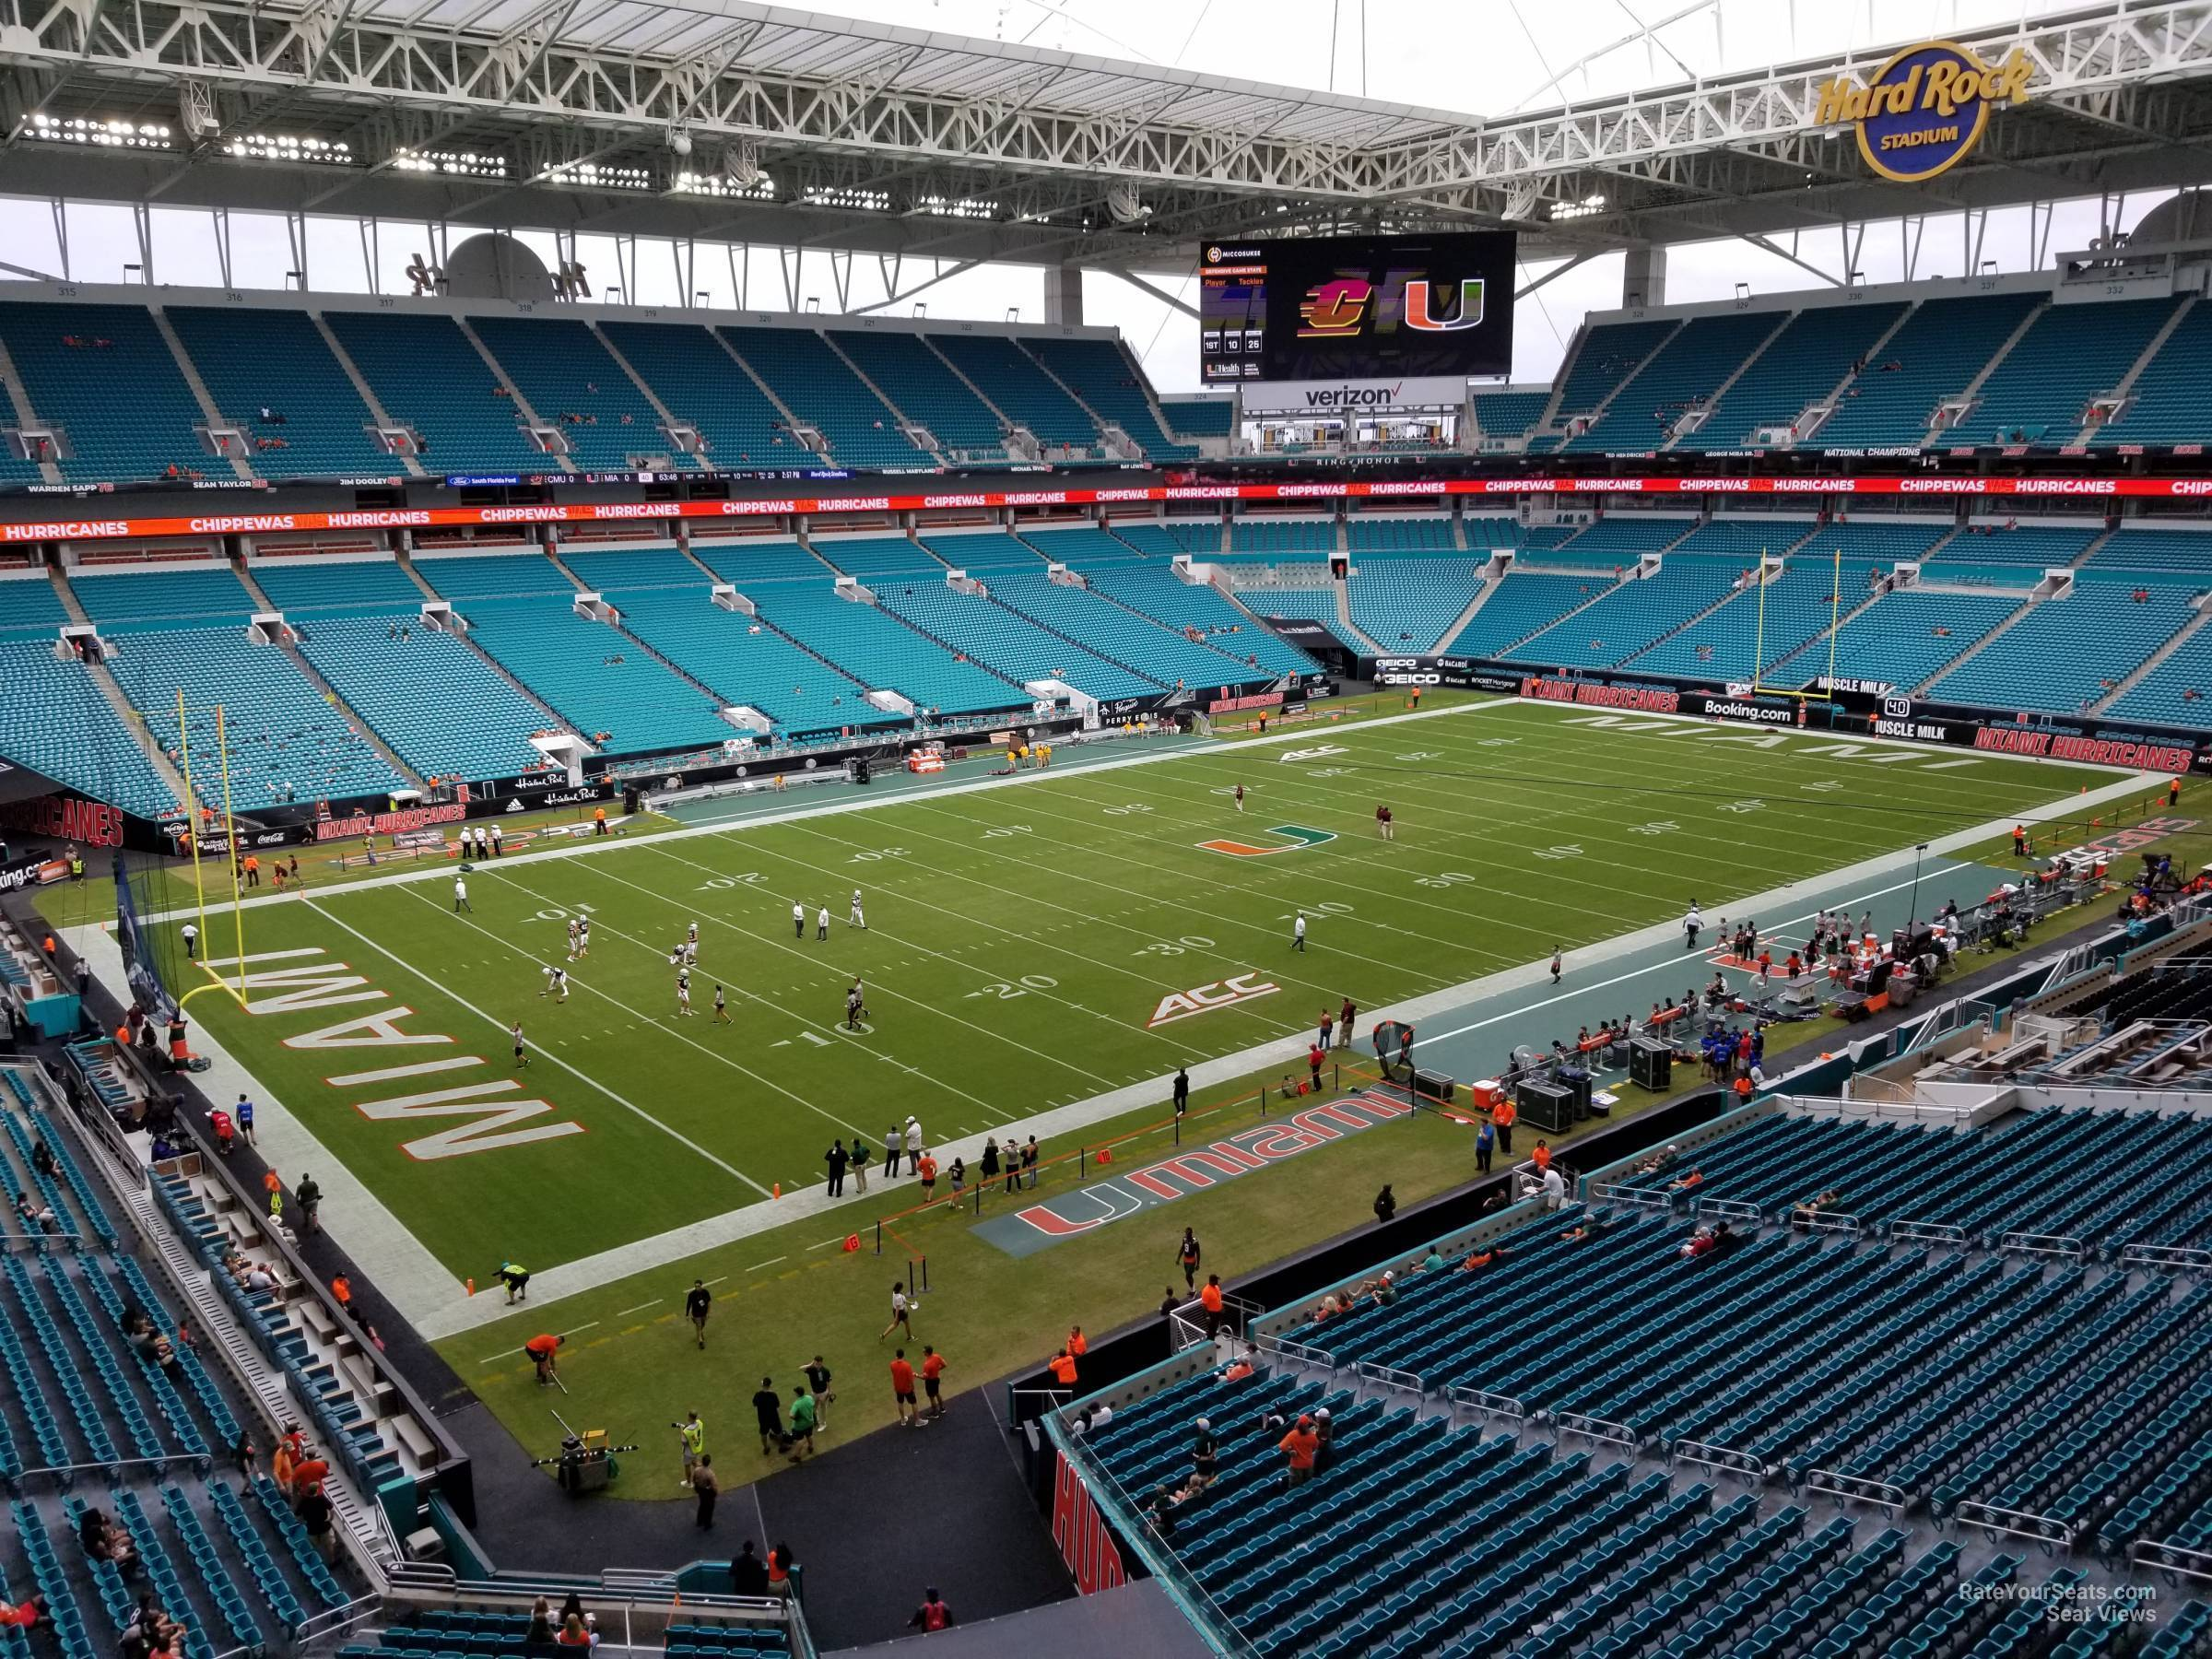 section 353 at hard rock stadium - miami dolphins